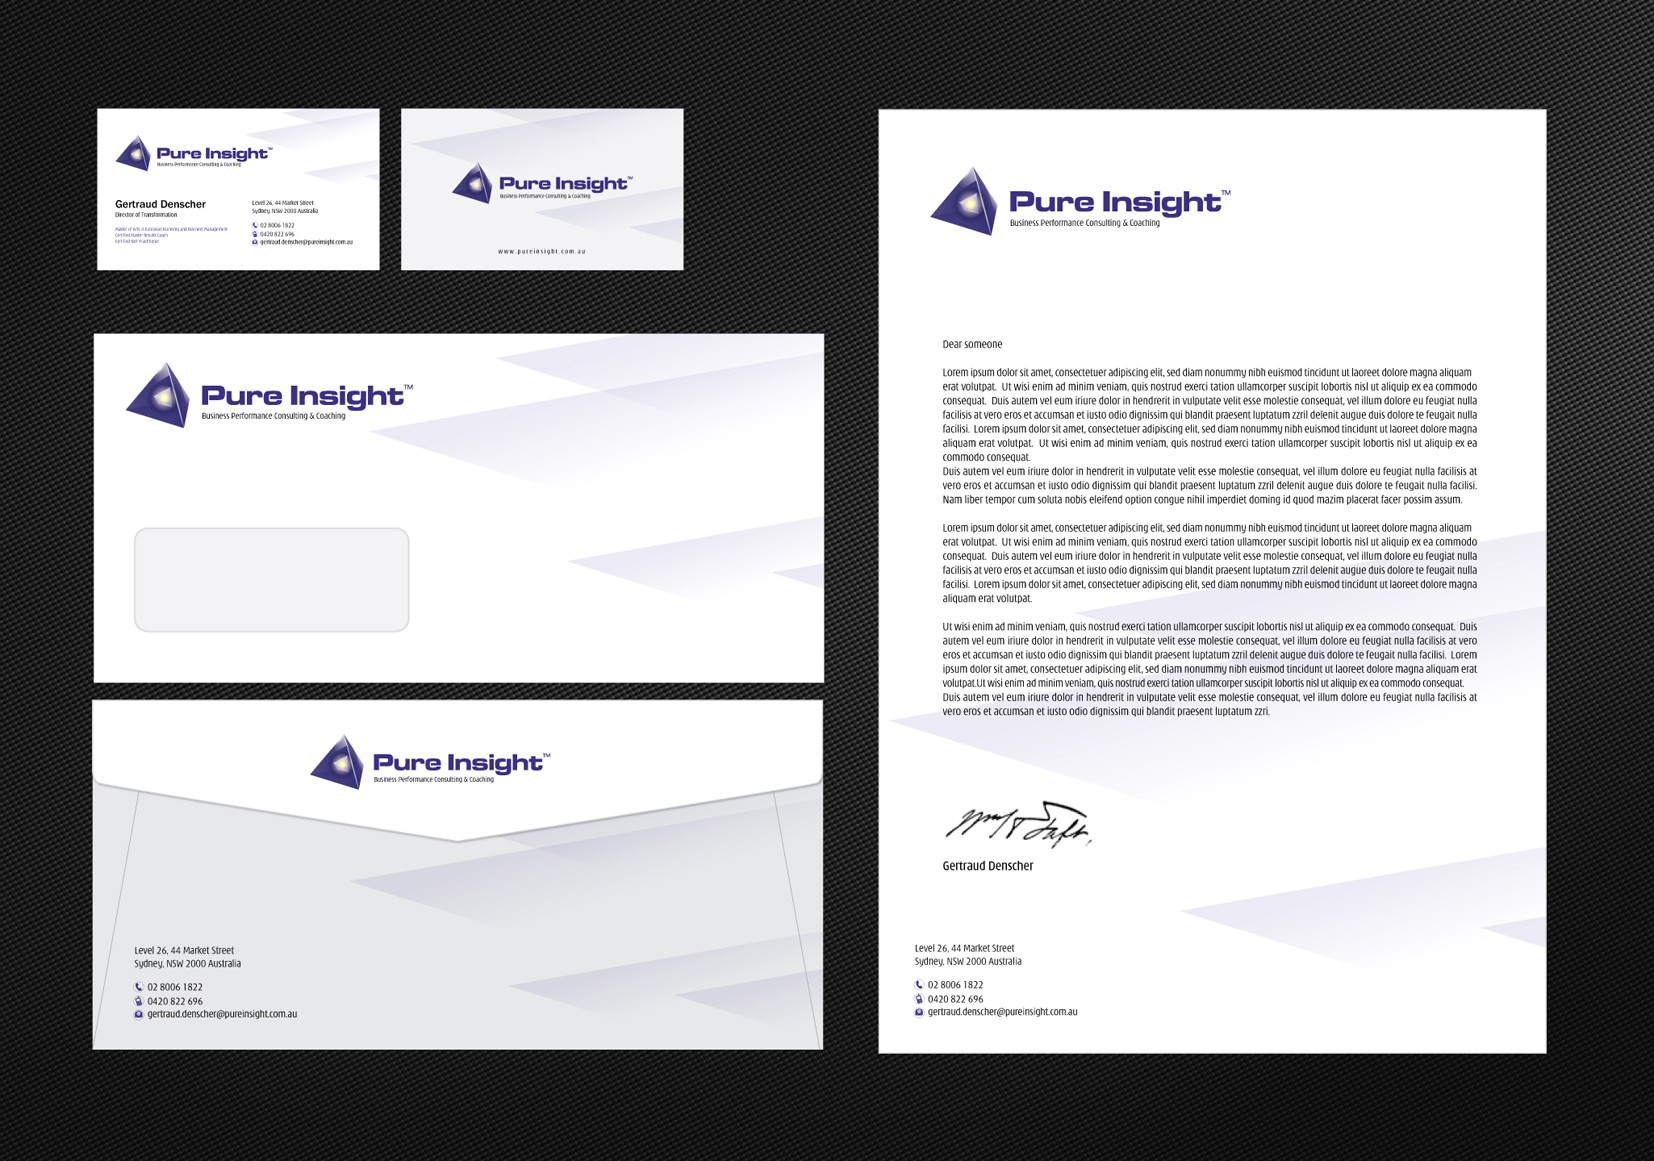 Help Pure Insight with a new stationery